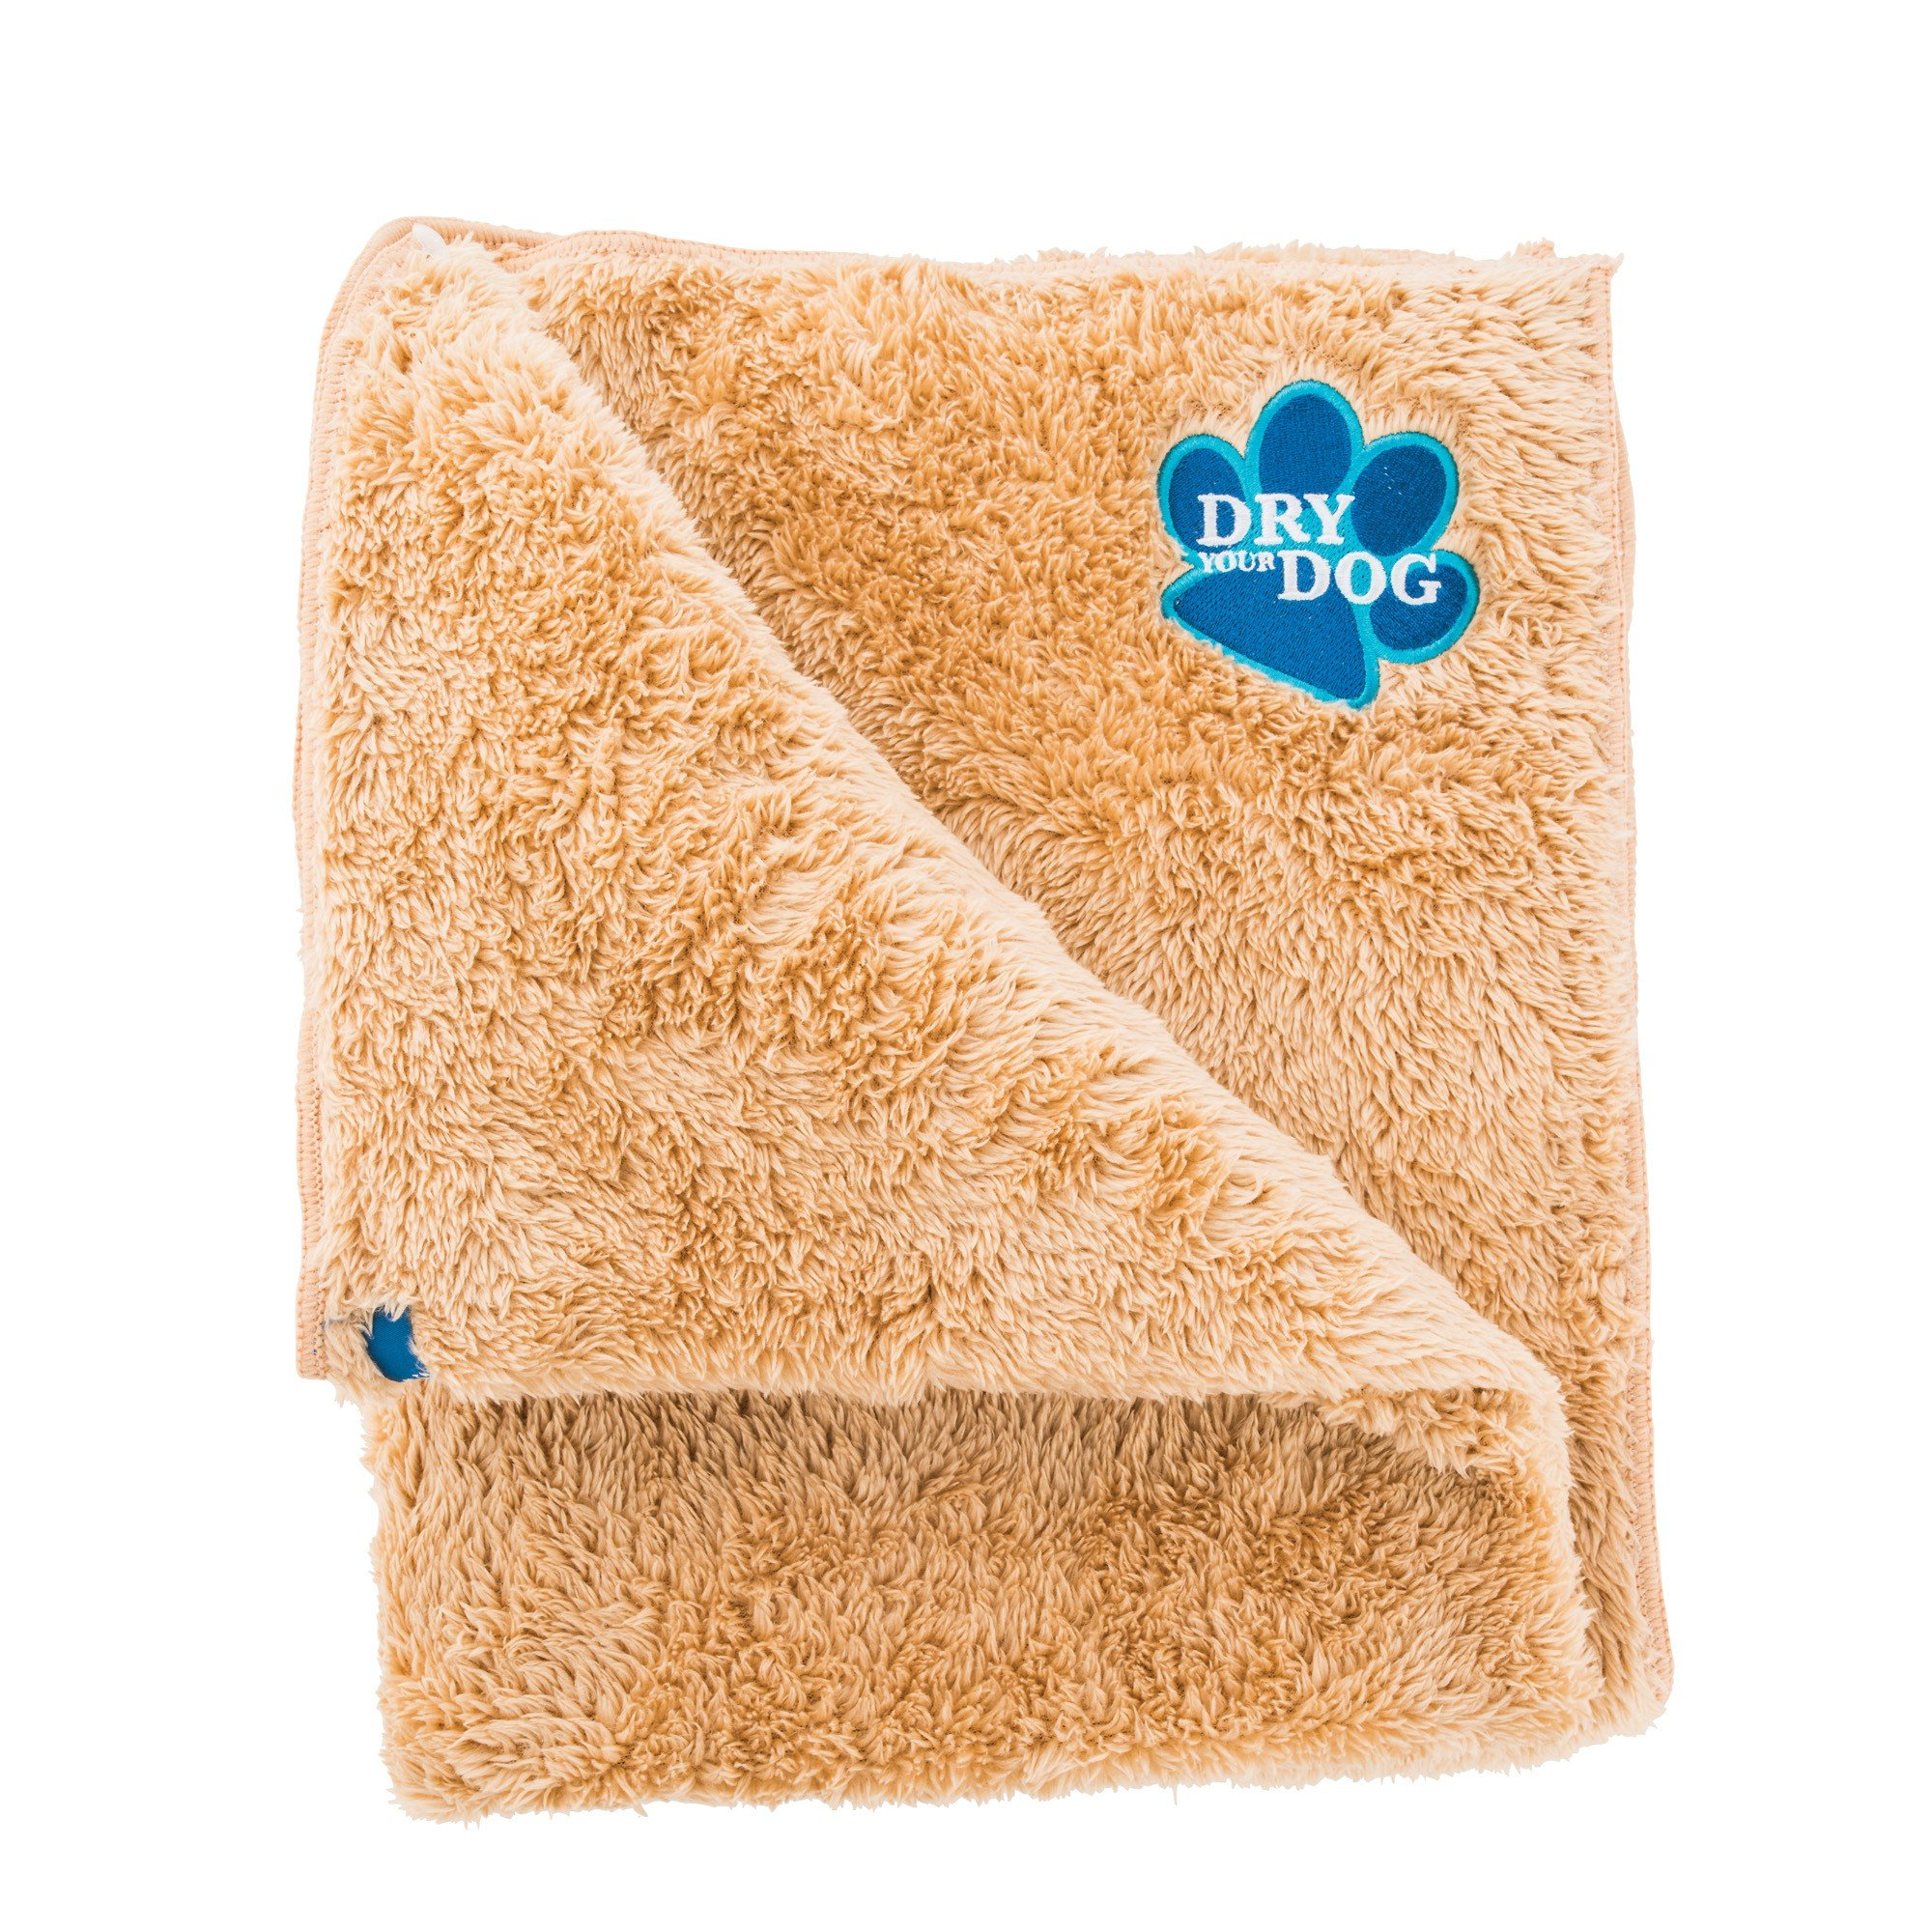 Upper Canada Soap Dry Your Dog Microfiber Pet Quick Drying Towel, One Size